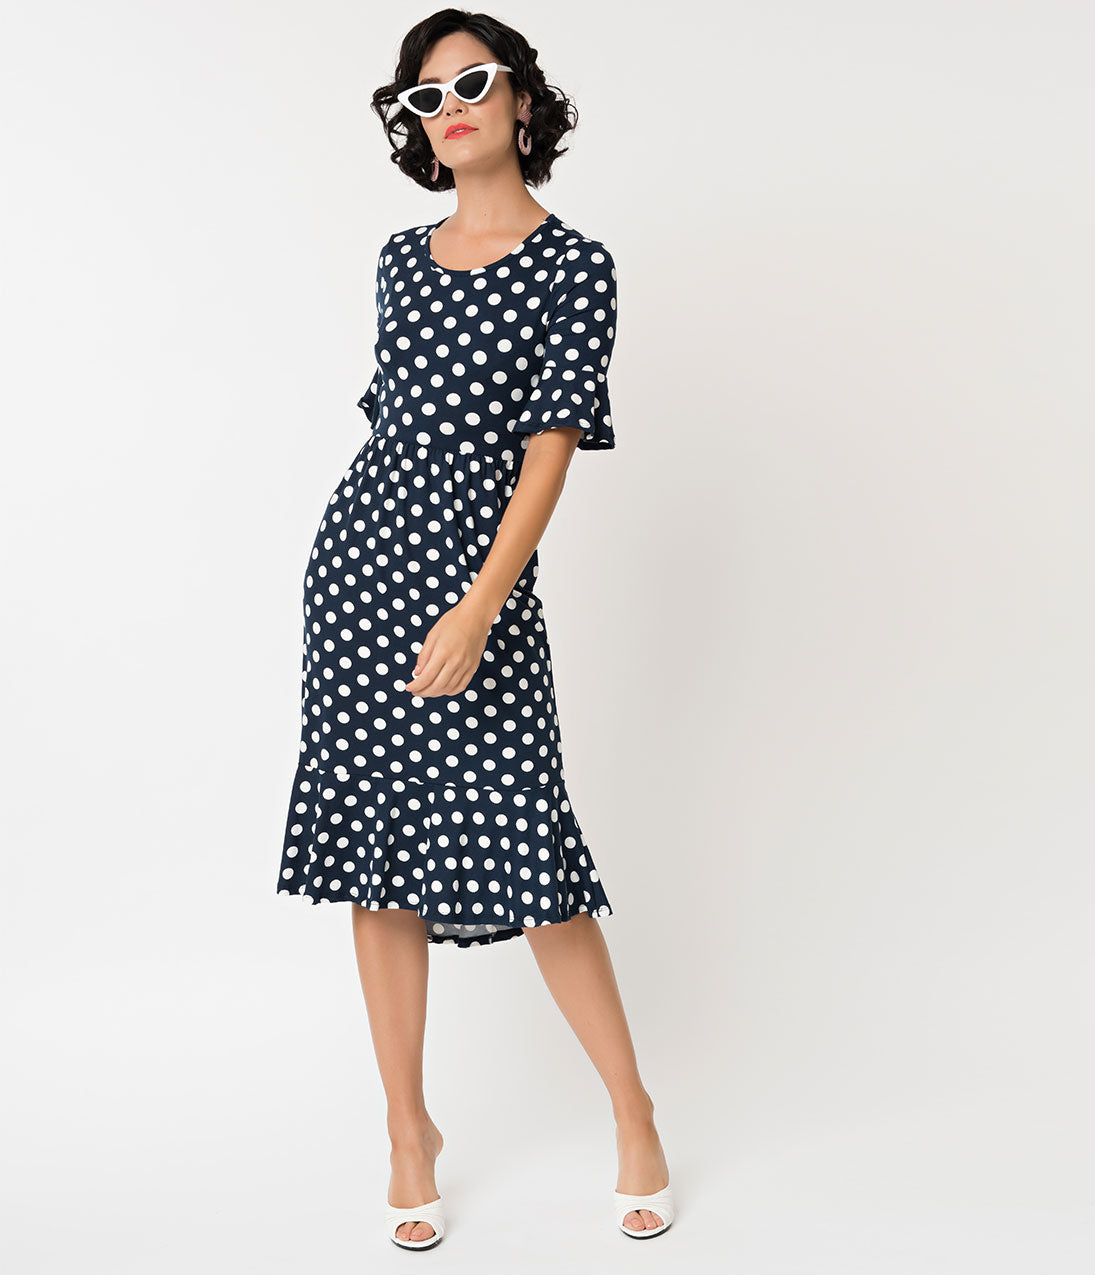 Vintage Polka Dot Dresses – 50s Spotty and Ditsy Prints Retro Style Navy  White Polka Dot Bell Sleeve Dress $48.00 AT vintagedancer.com